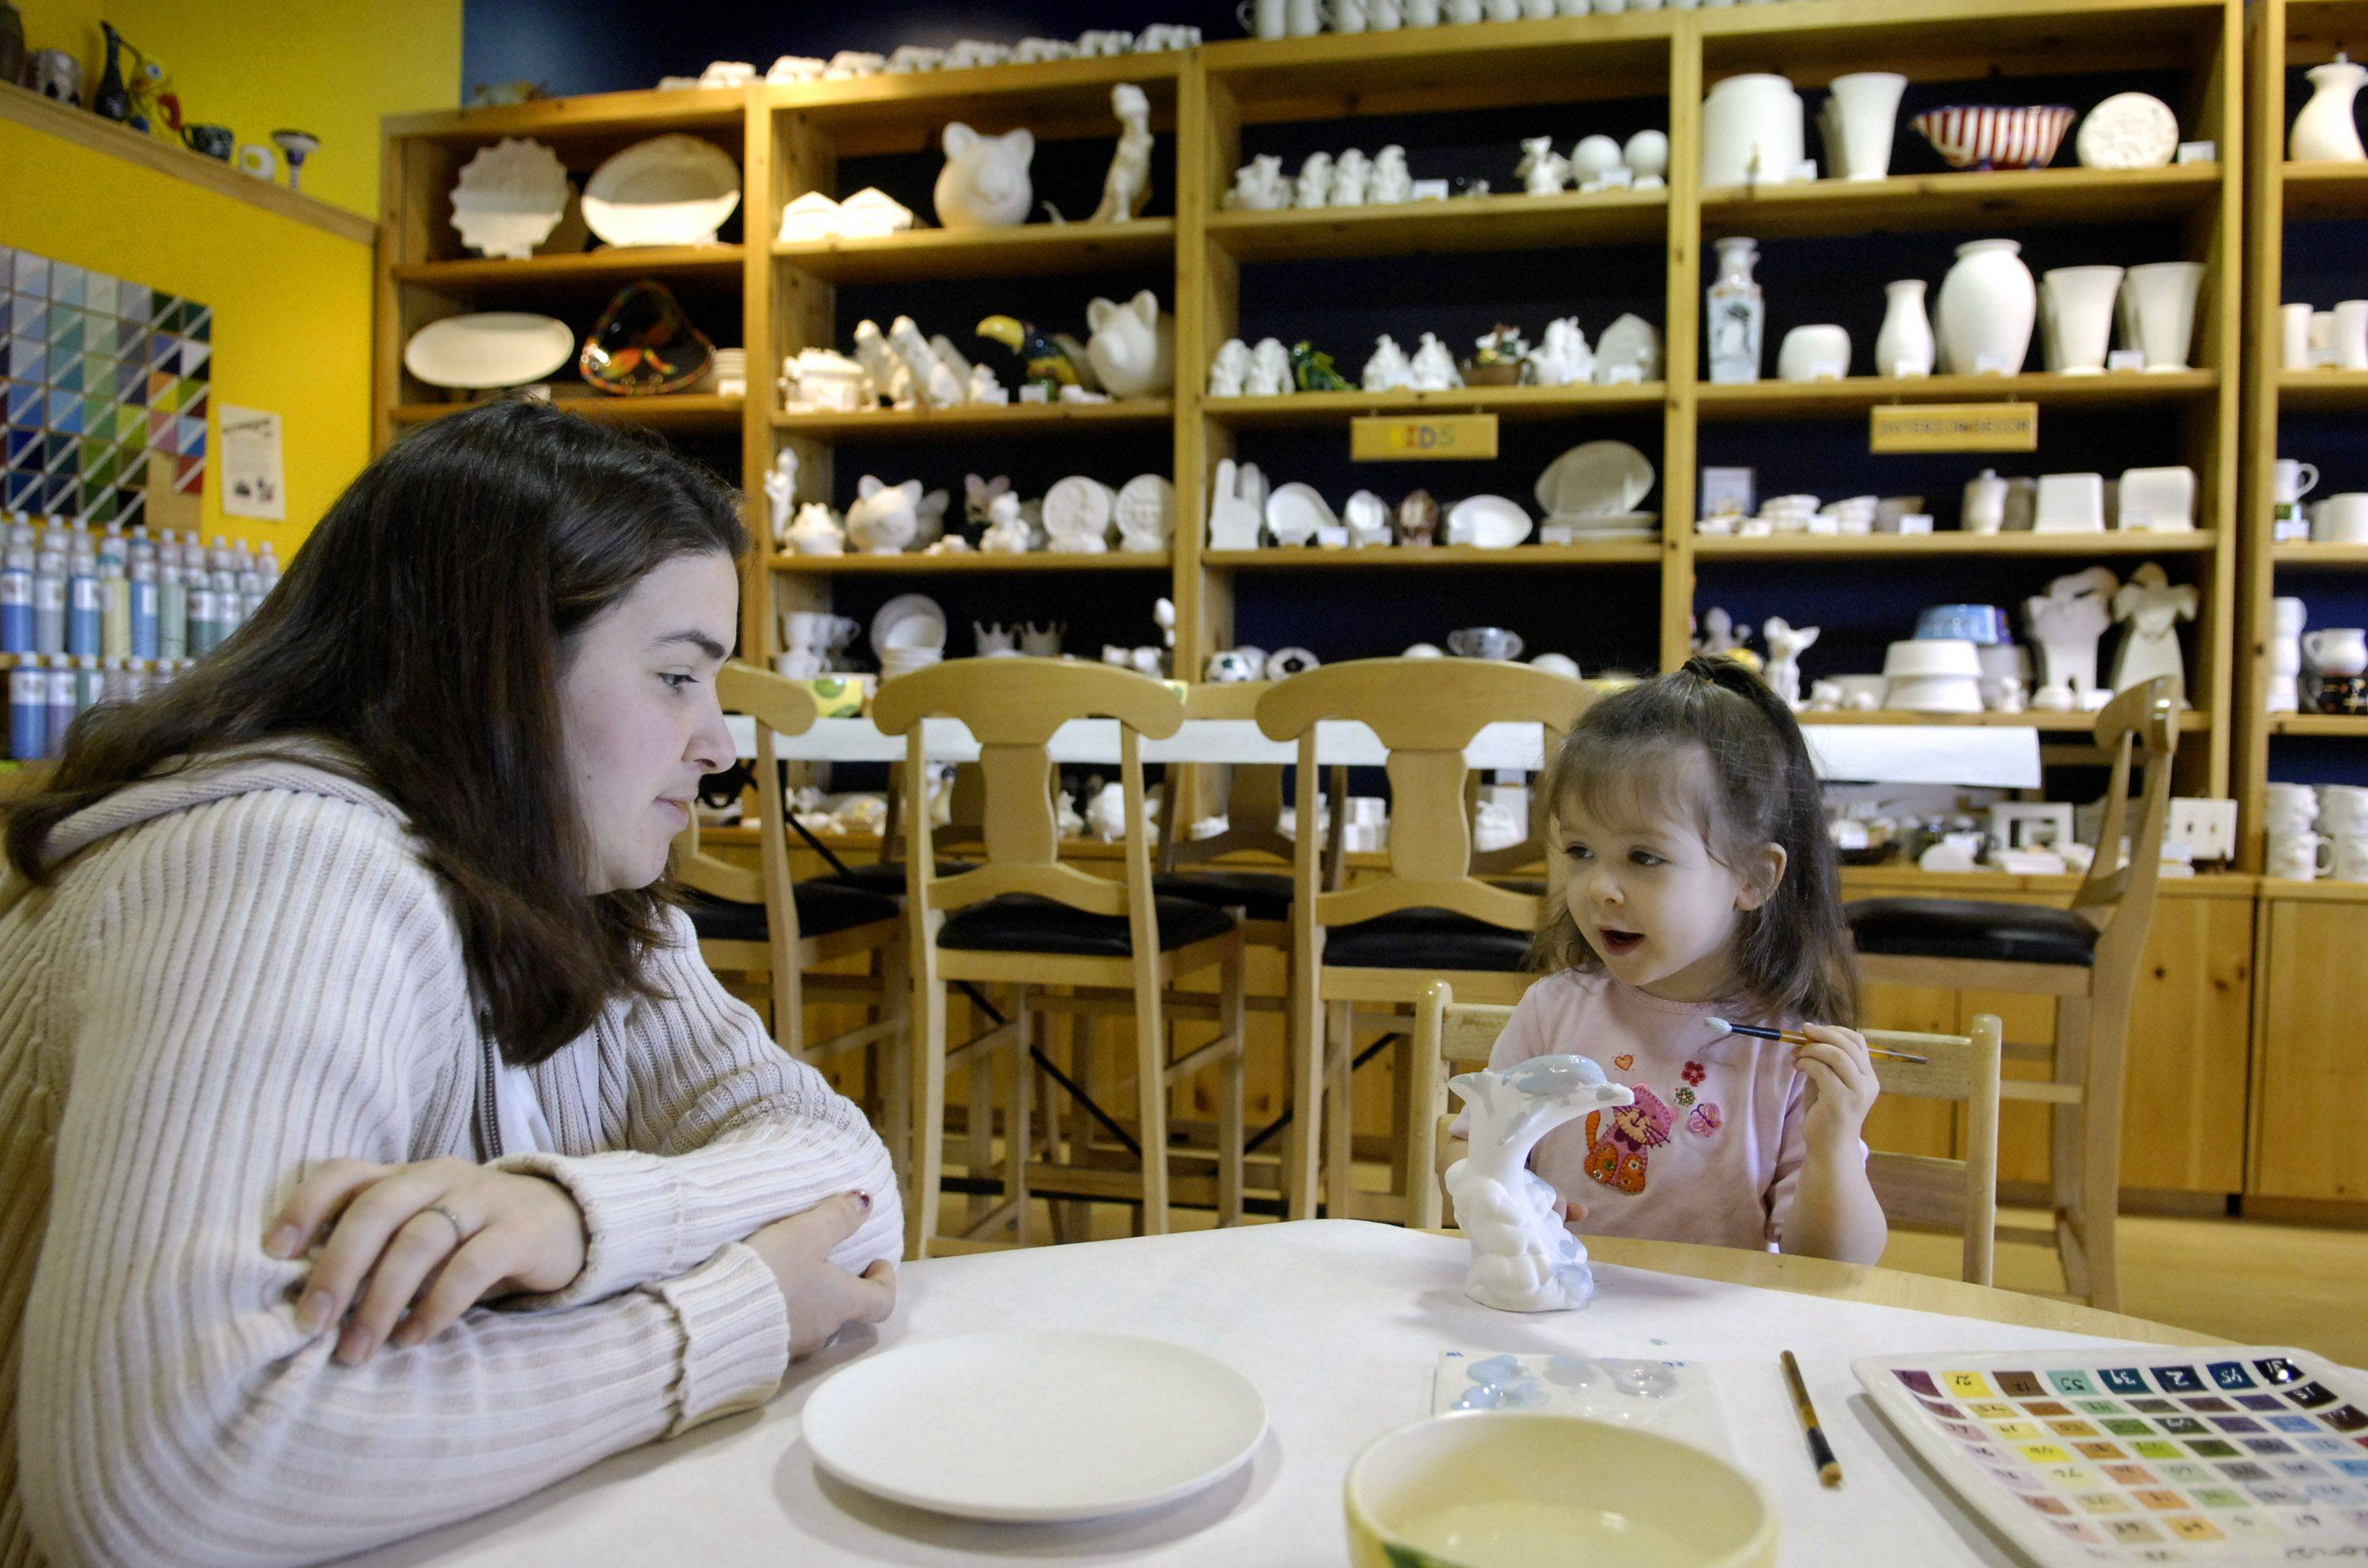 Roseanna Kocan of North Aurora watches as her 2-year-old daughter Hannah paints a ceramic dolphin at Color Me Mine in the Geneva Commons. The studio will offer discounts on Saturday evenings to customers wearing pajamas.